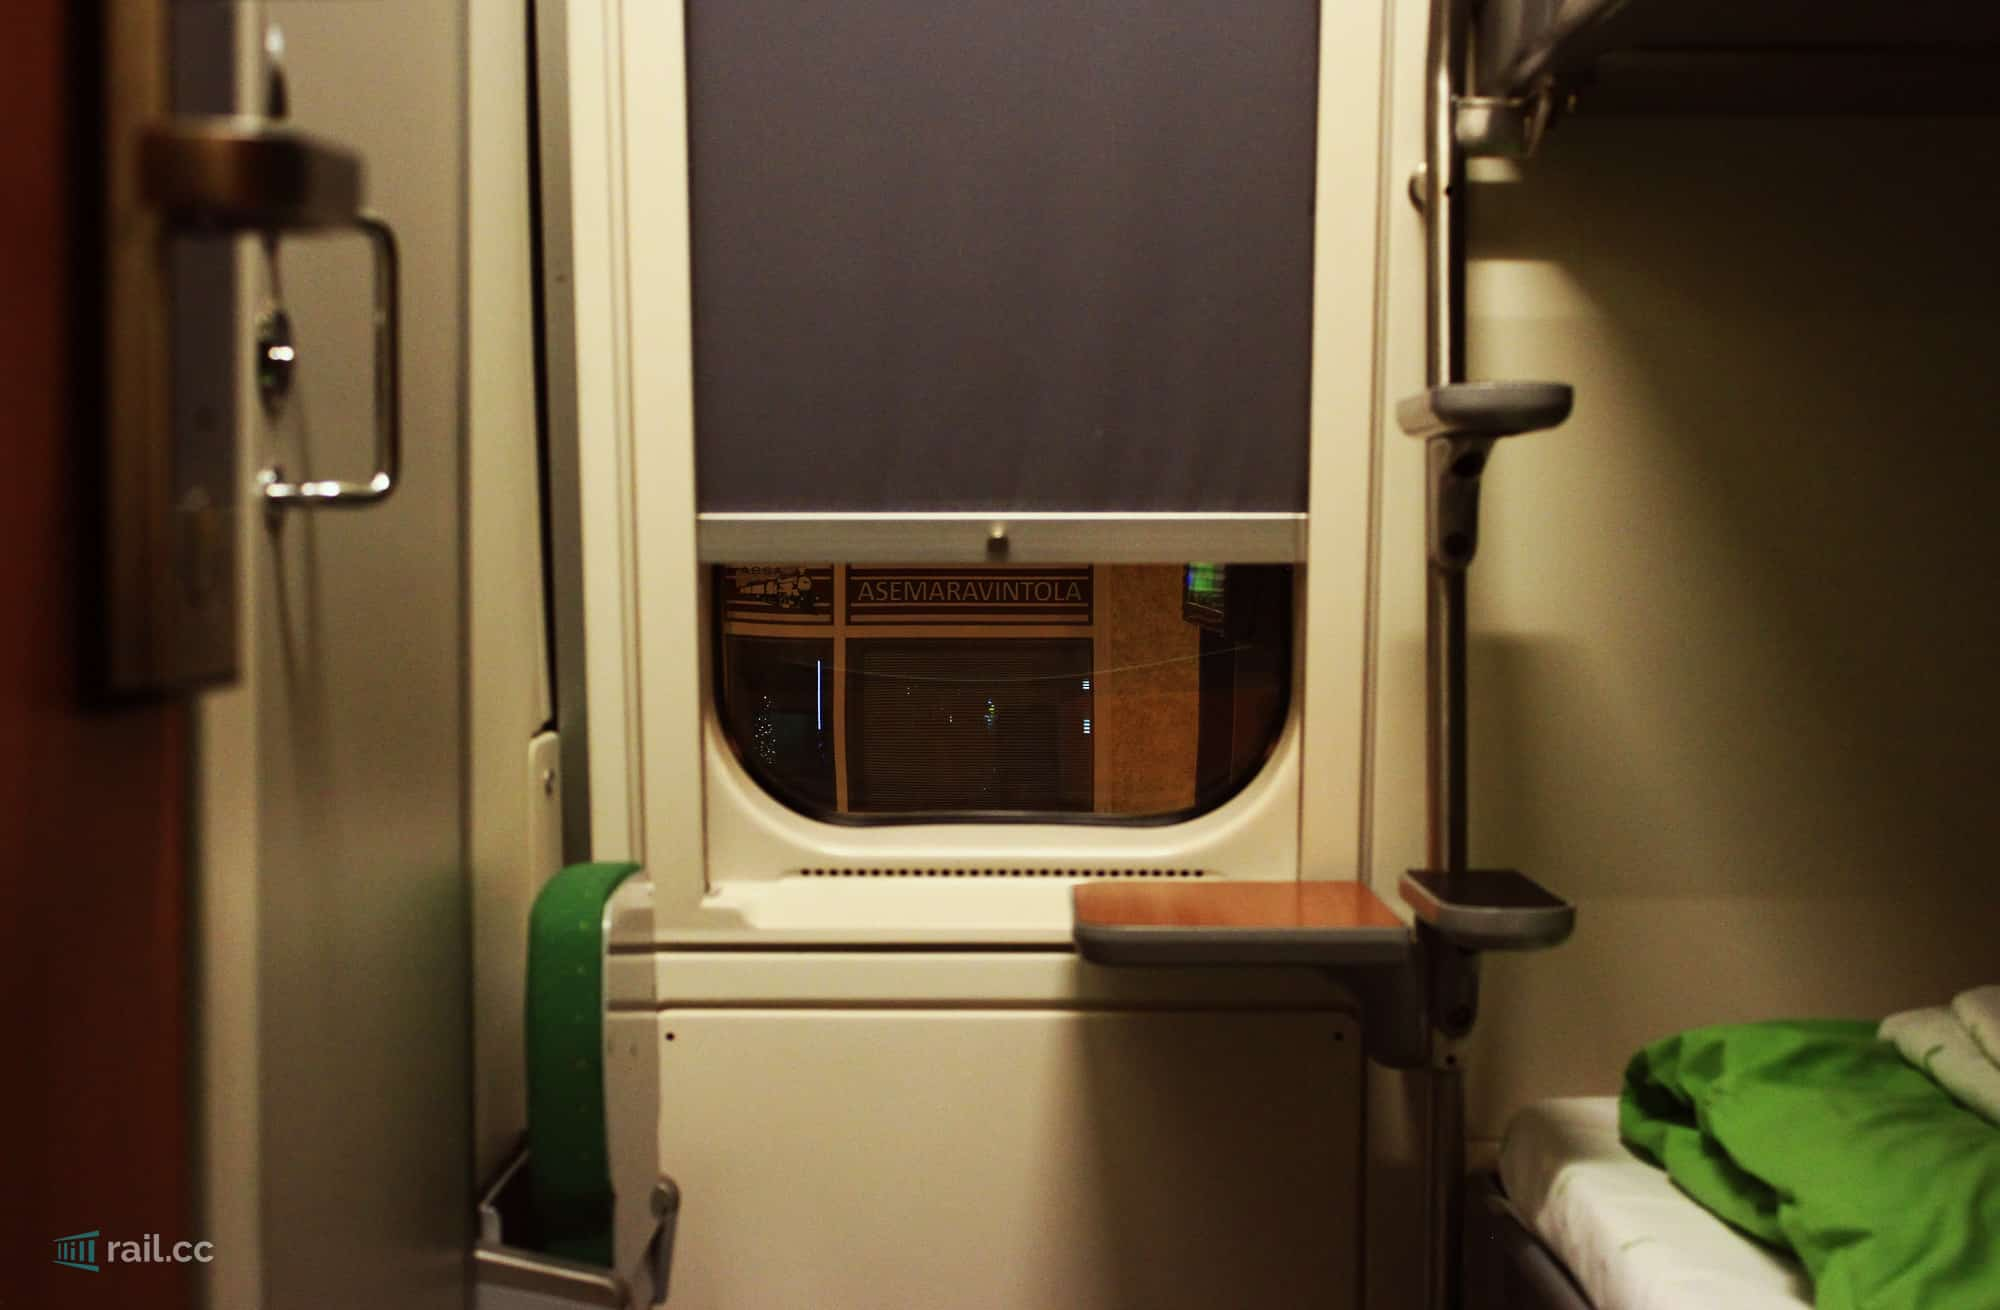 VR sleeper compartment window